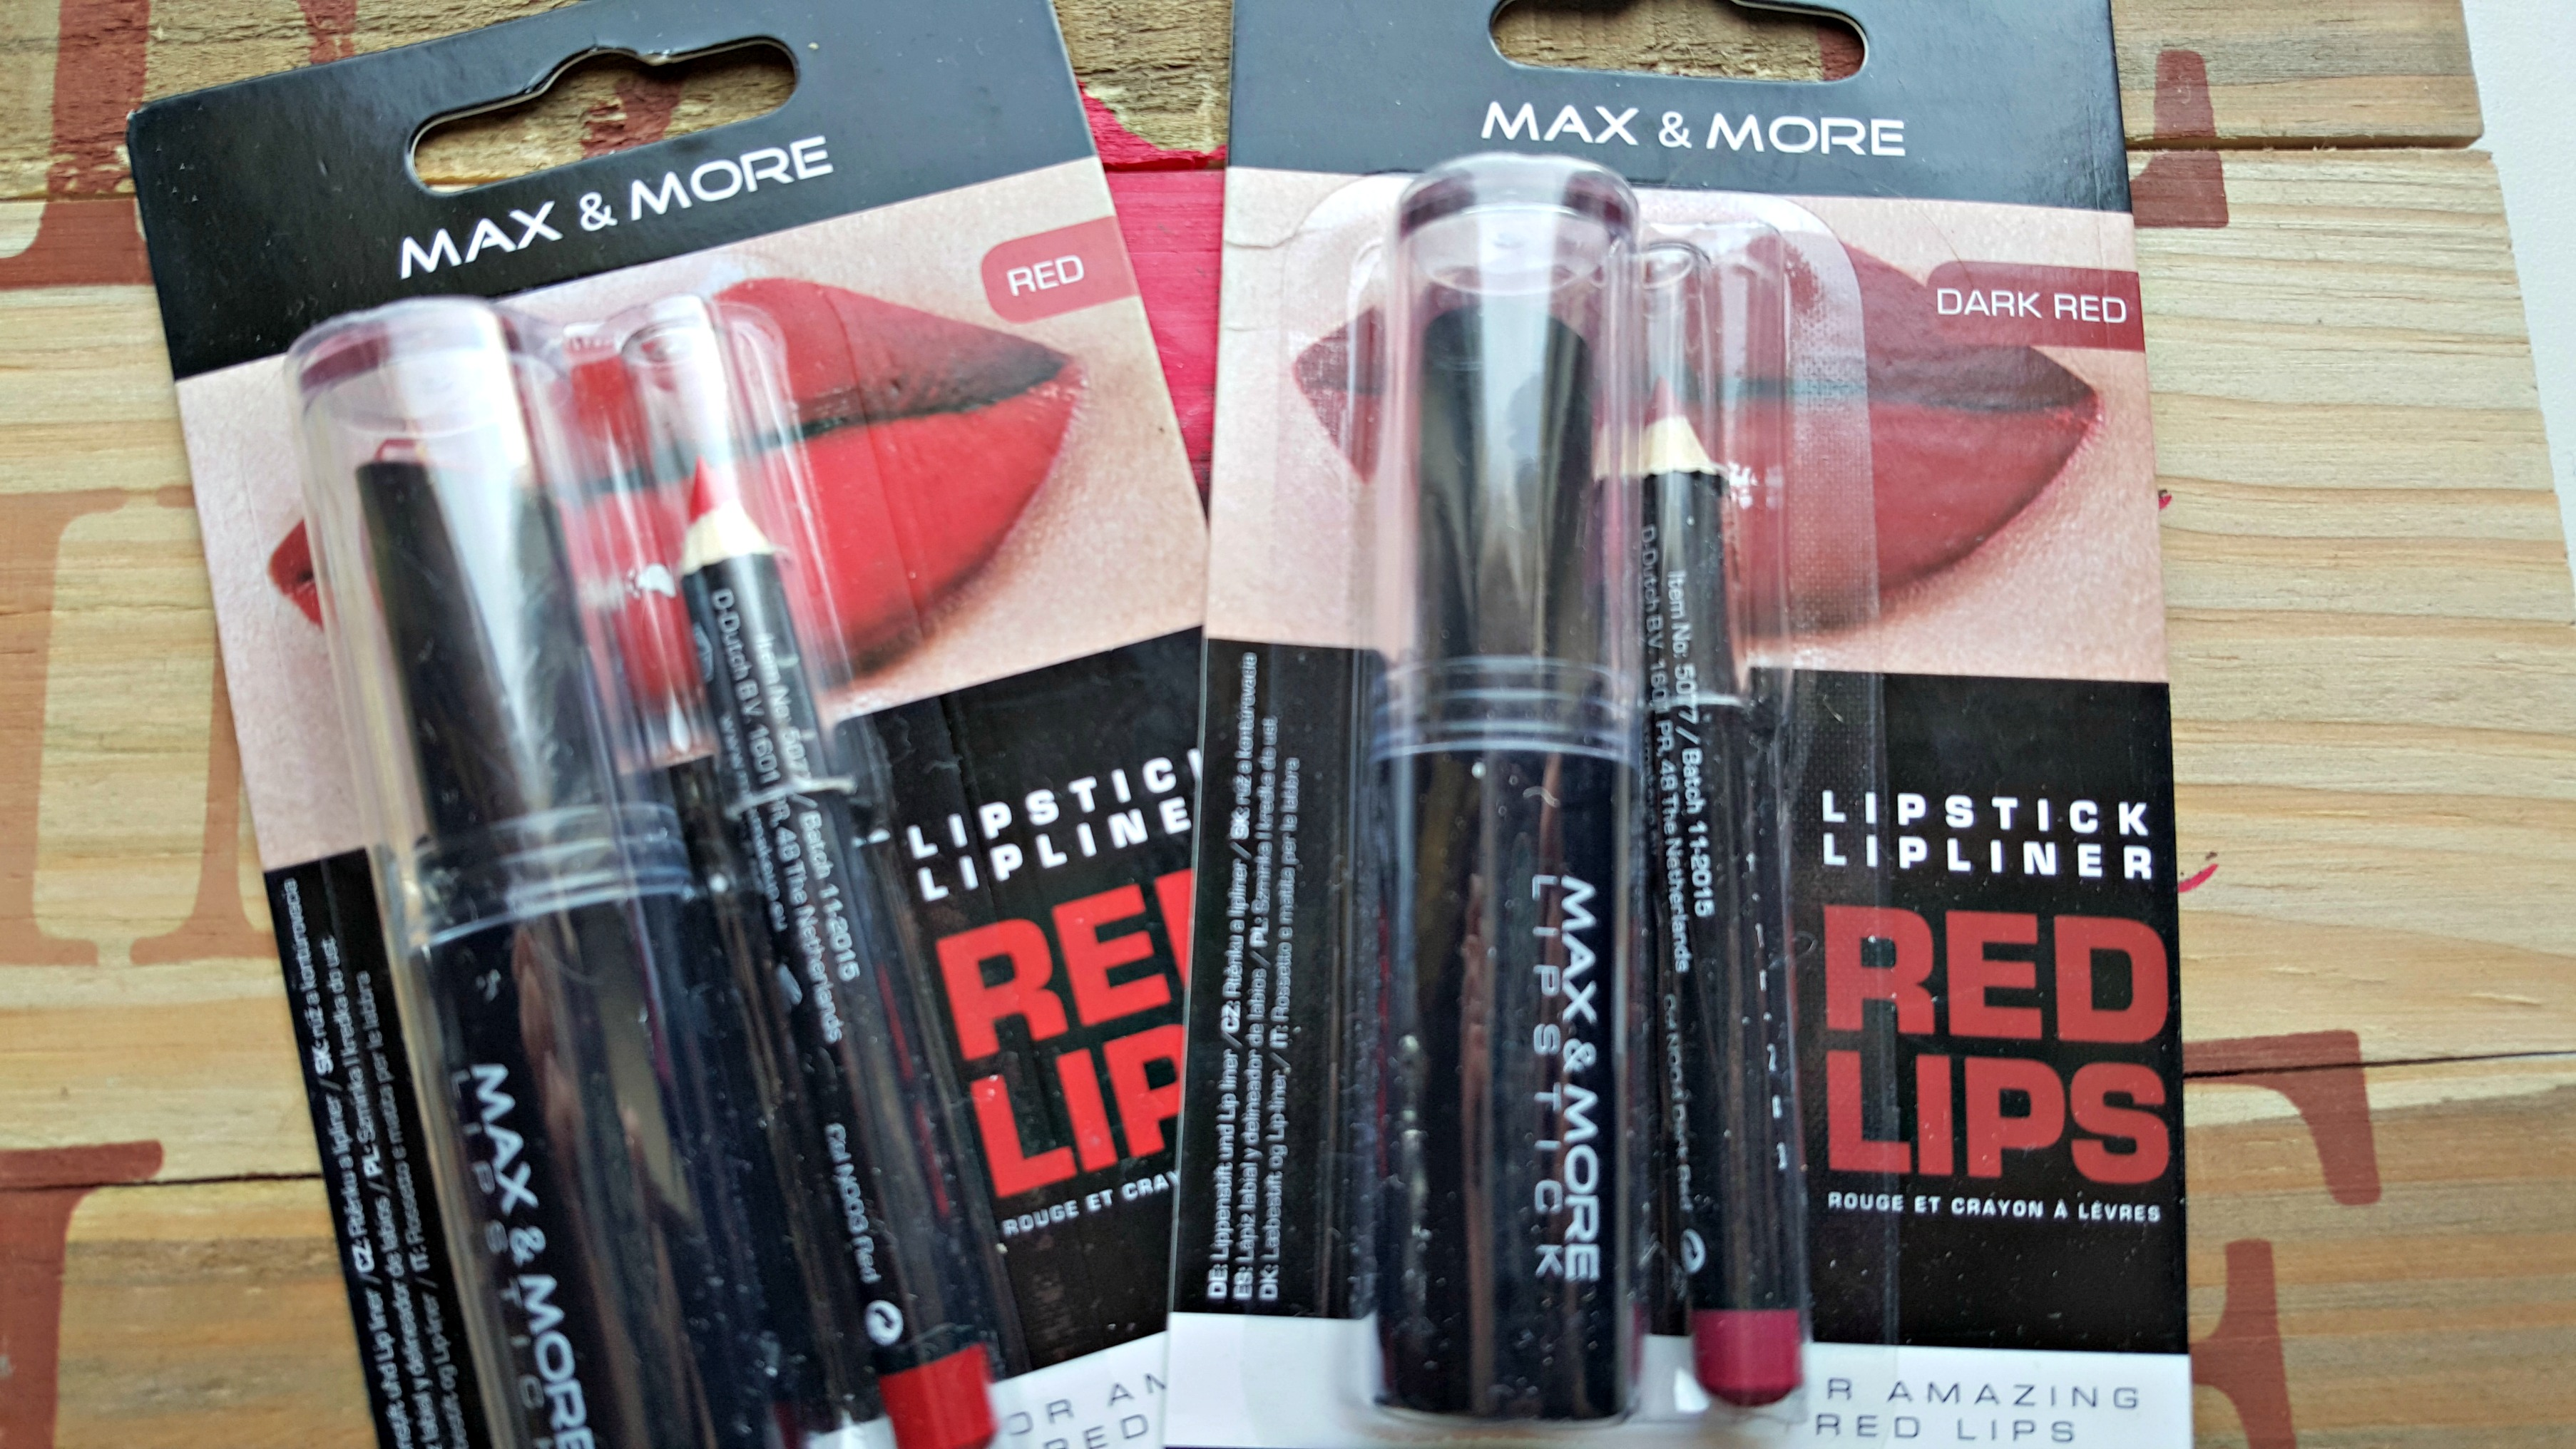 Review en max & more lipsticks